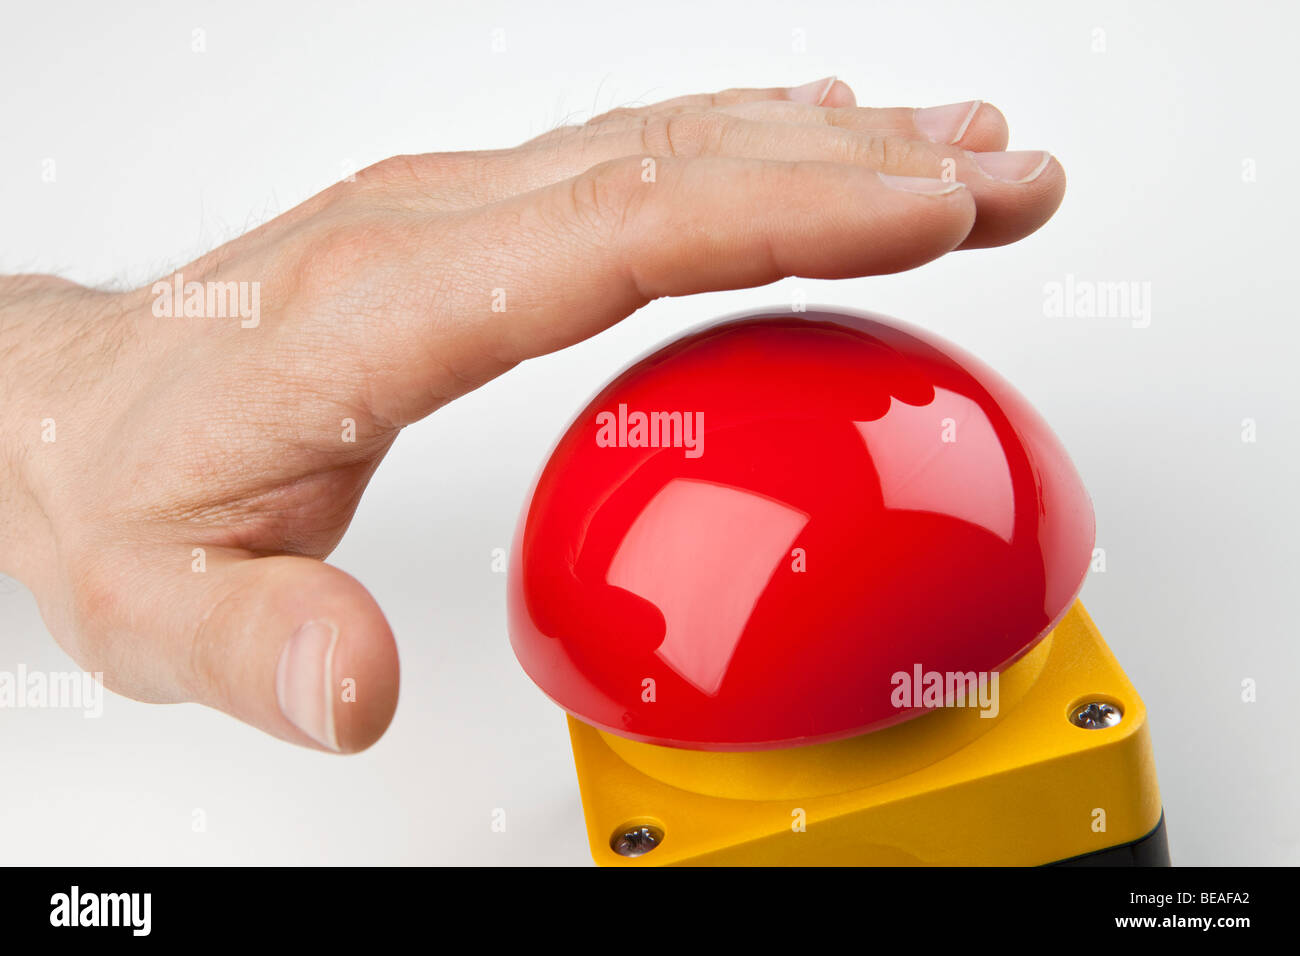 A hand about to press a big red buzzer - Stock Image